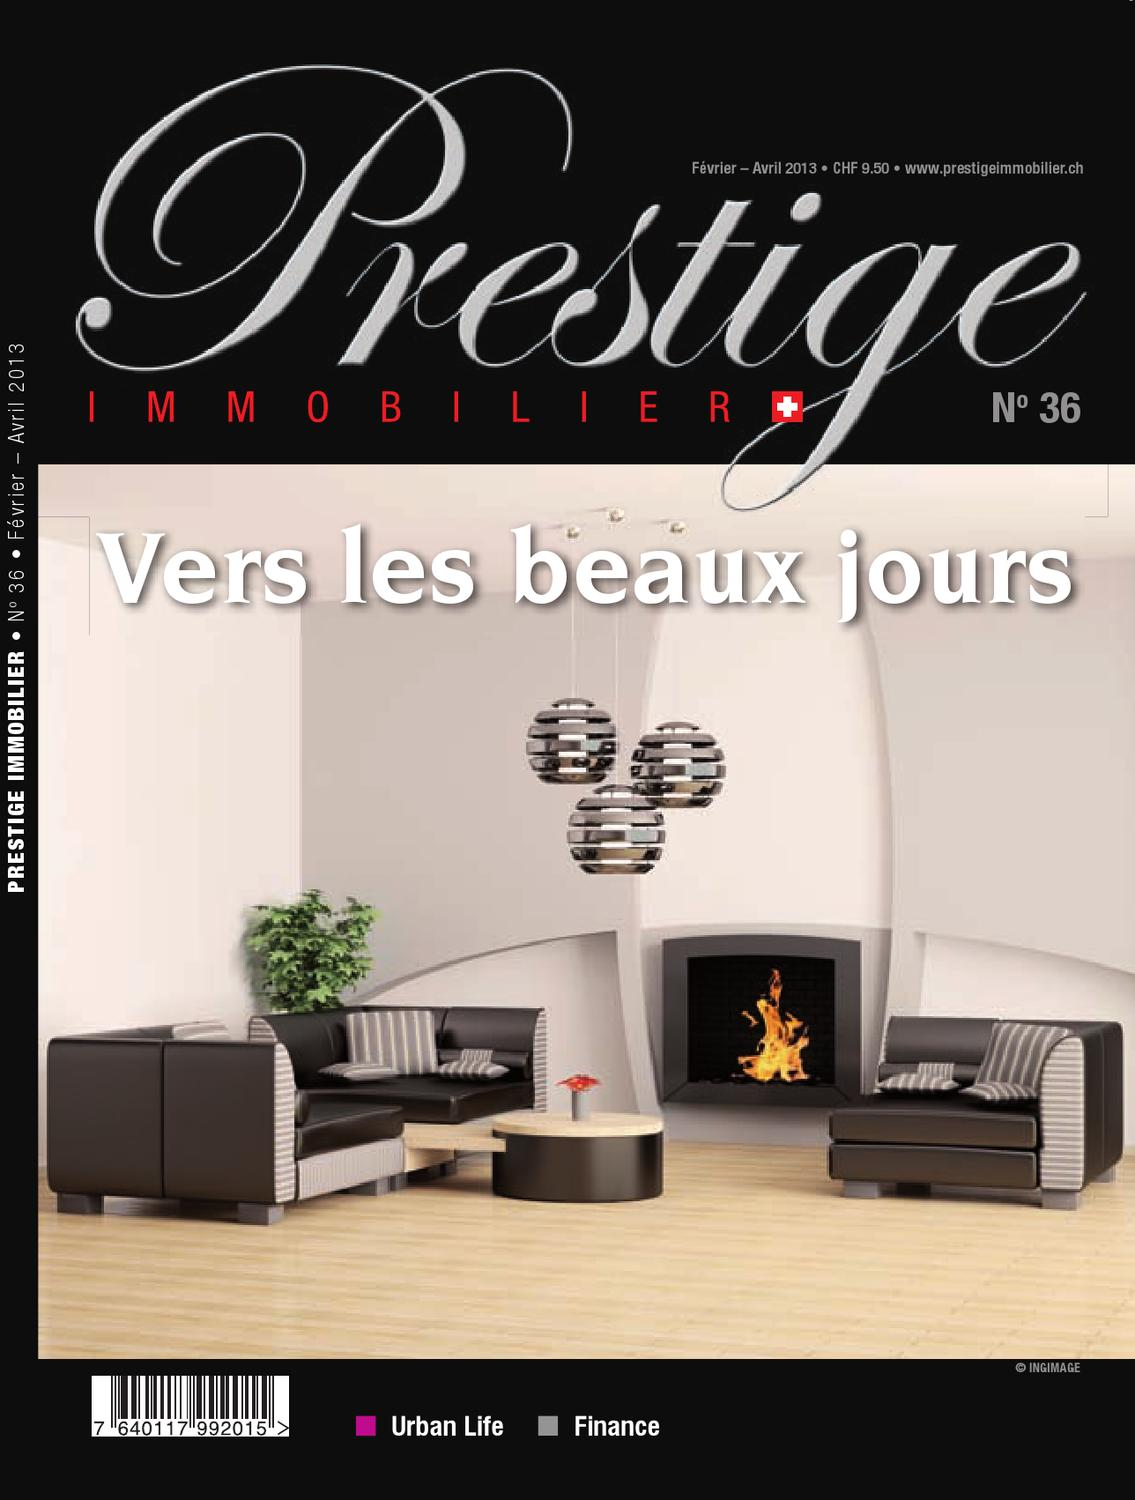 Prestige immobilier n°36 by Plurality Presse Prestige Immobilier - issuu 307226be47e